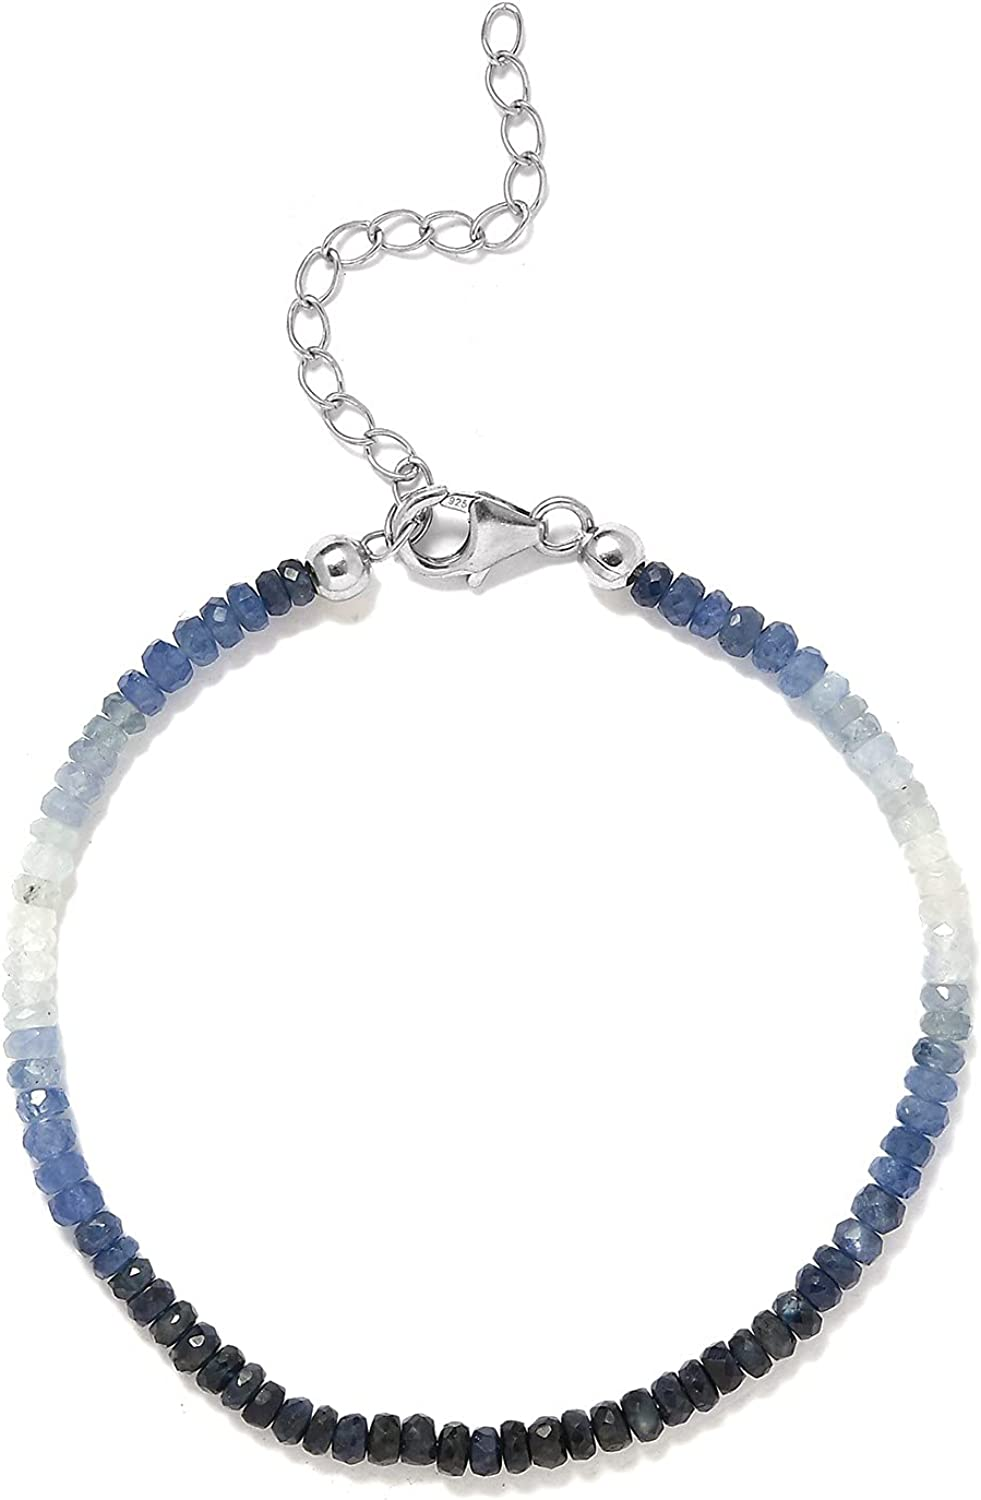 Shop LC 925 Sterling Silver Beads Ranking TOP19 Boston Mall Sapphire Pink Chakra S Therapy